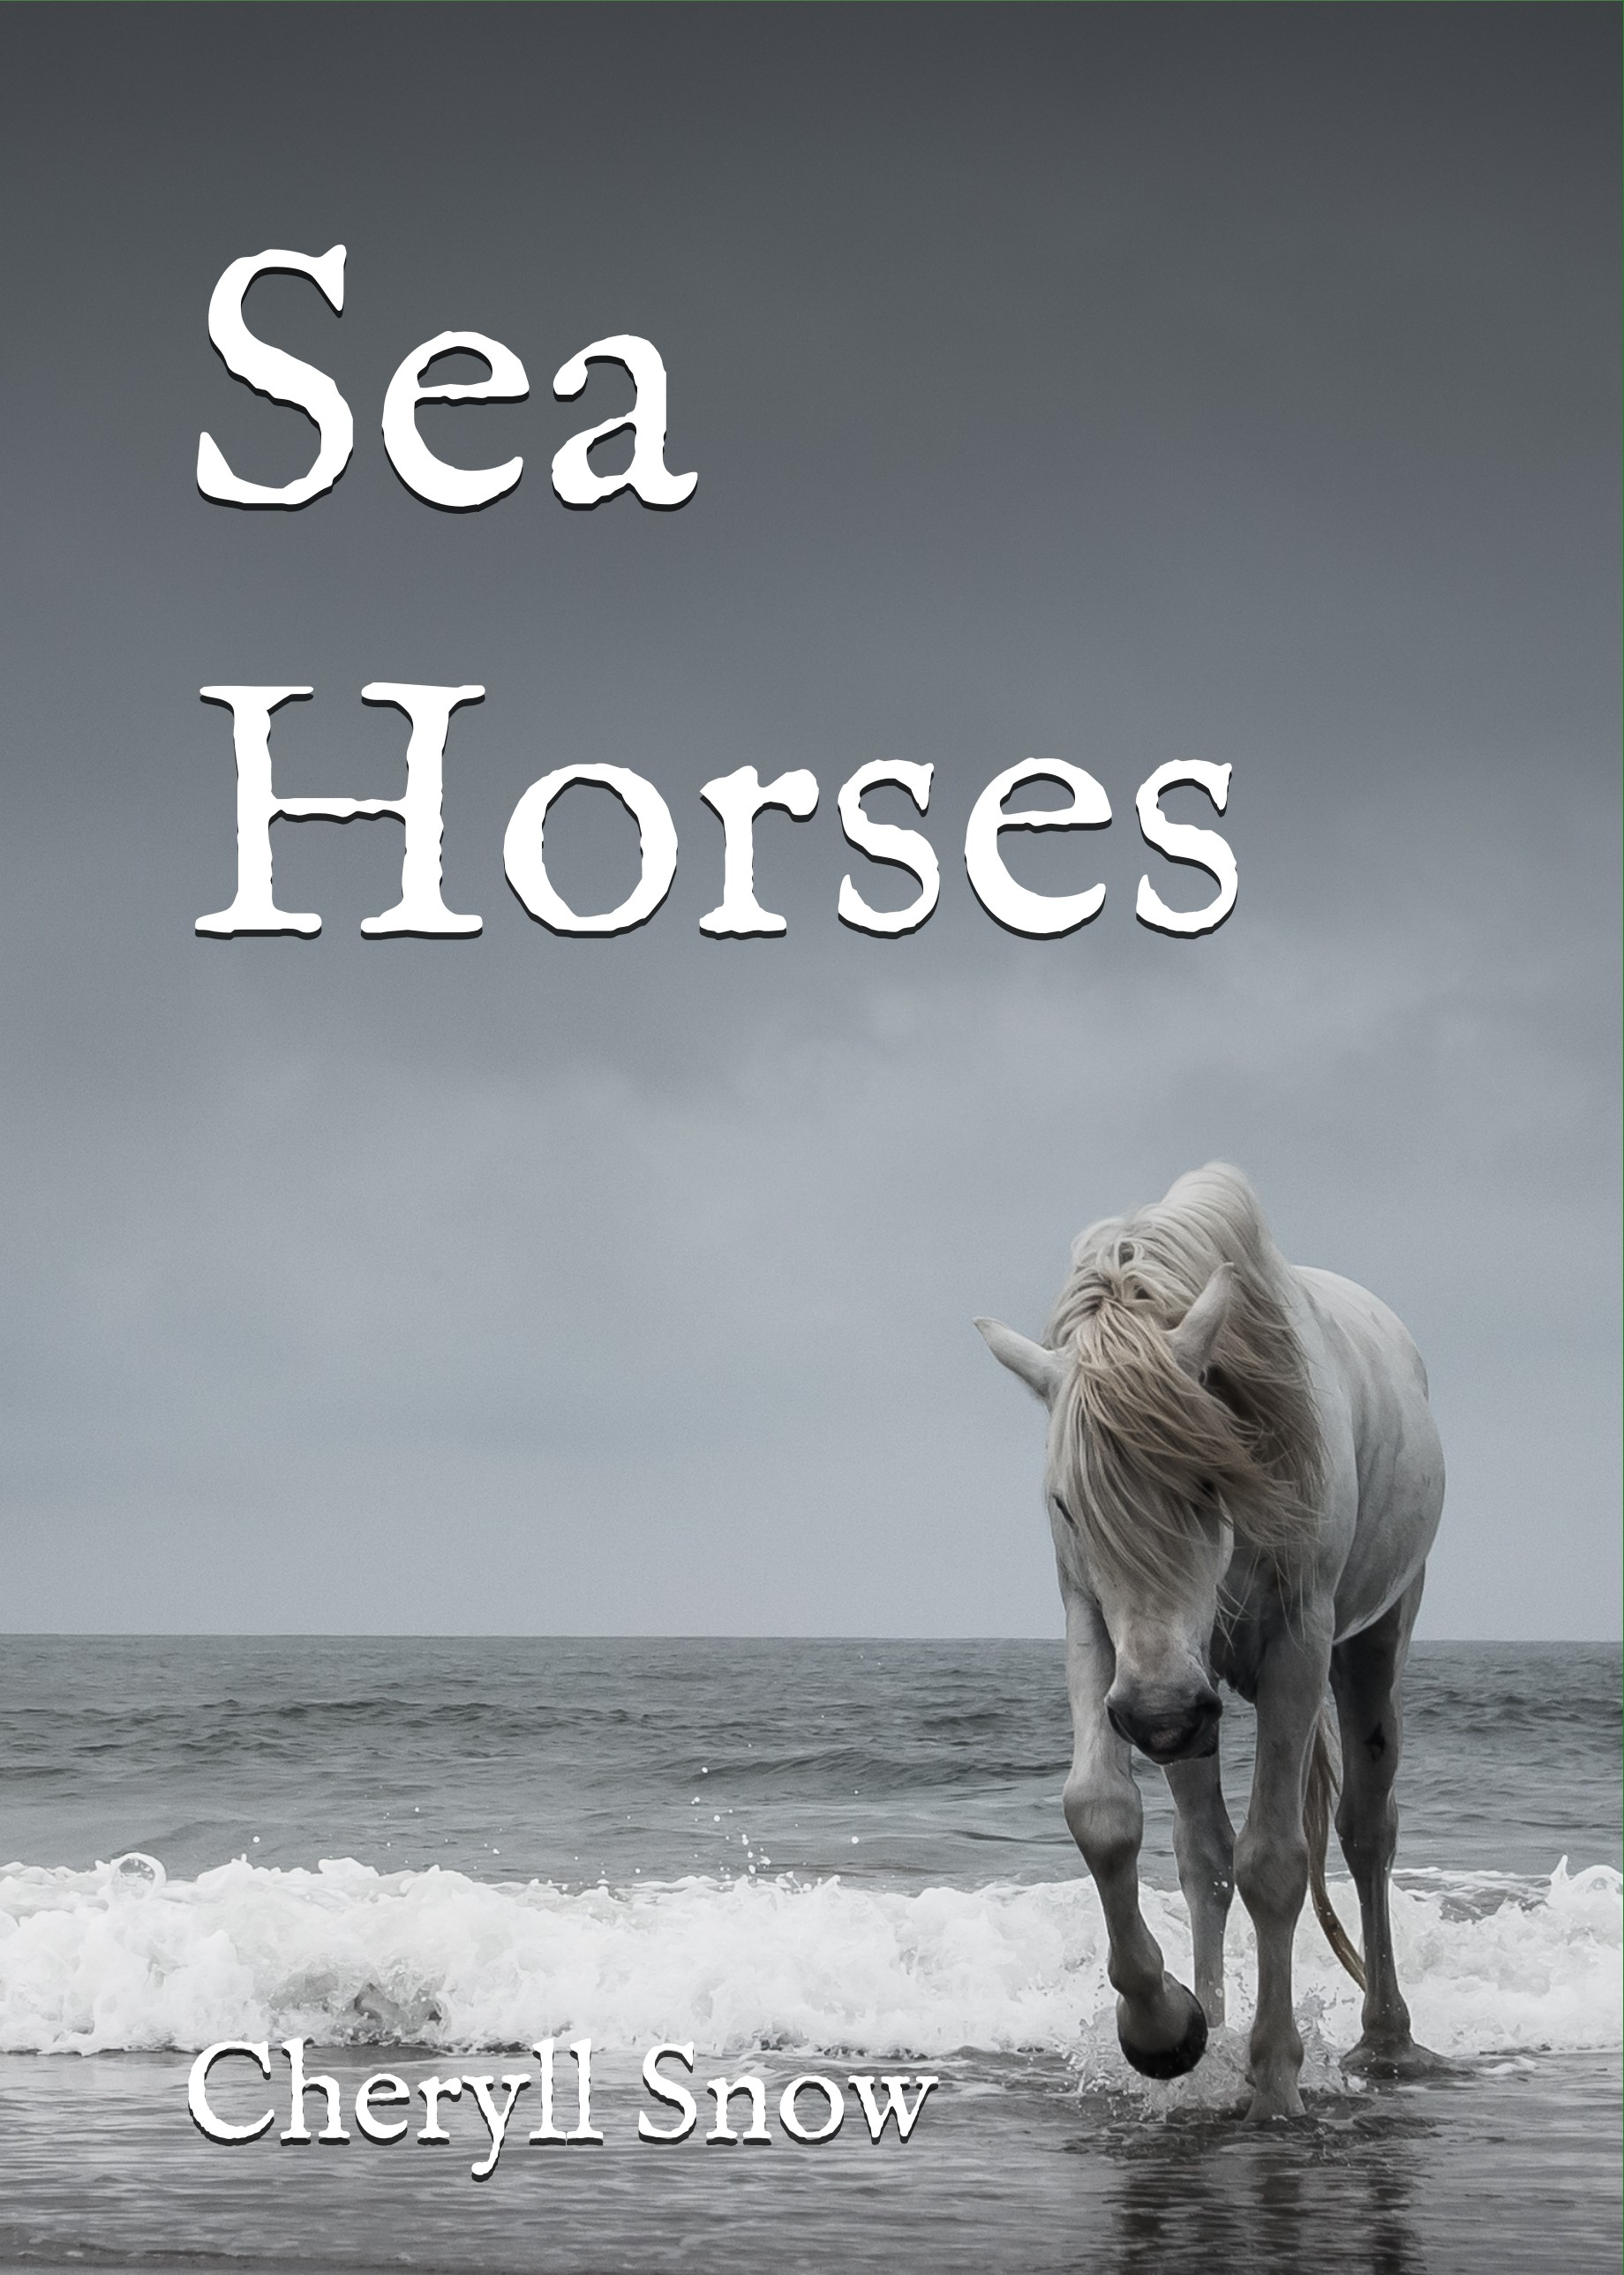 Sea Horses Back Cover Spine and Front Cover (2).jpg